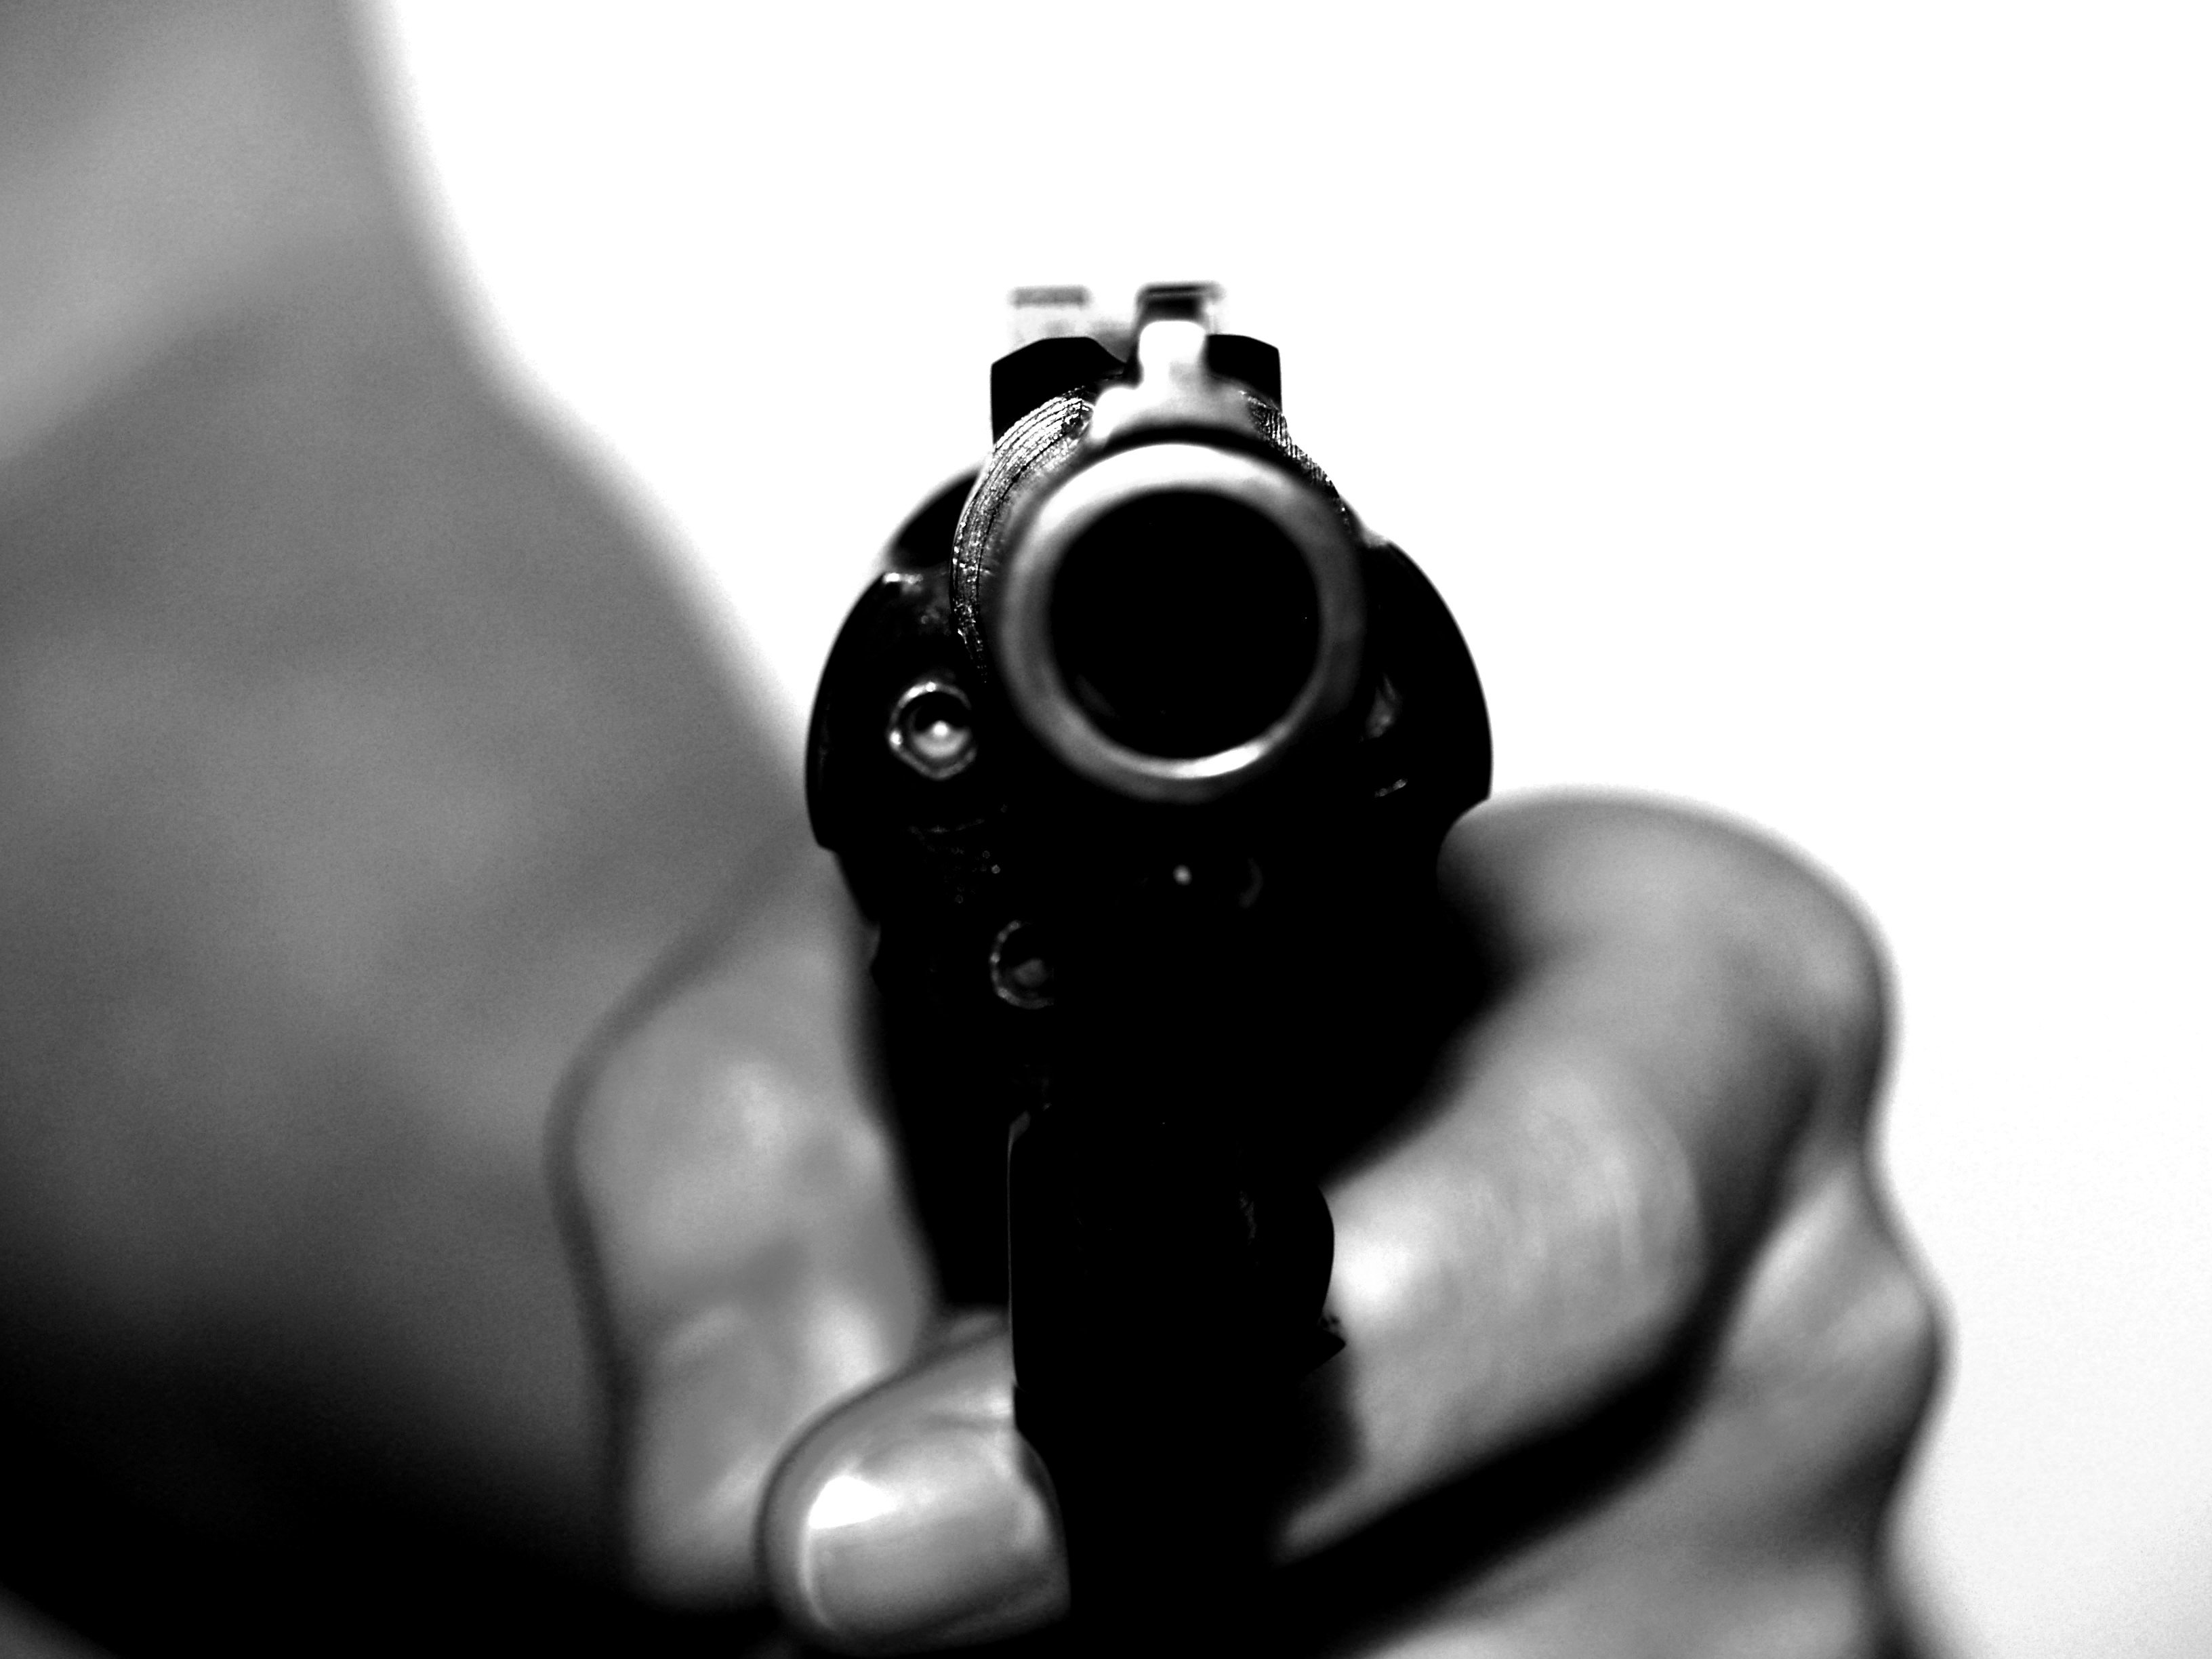 man shoots dead wife over domestic disputes